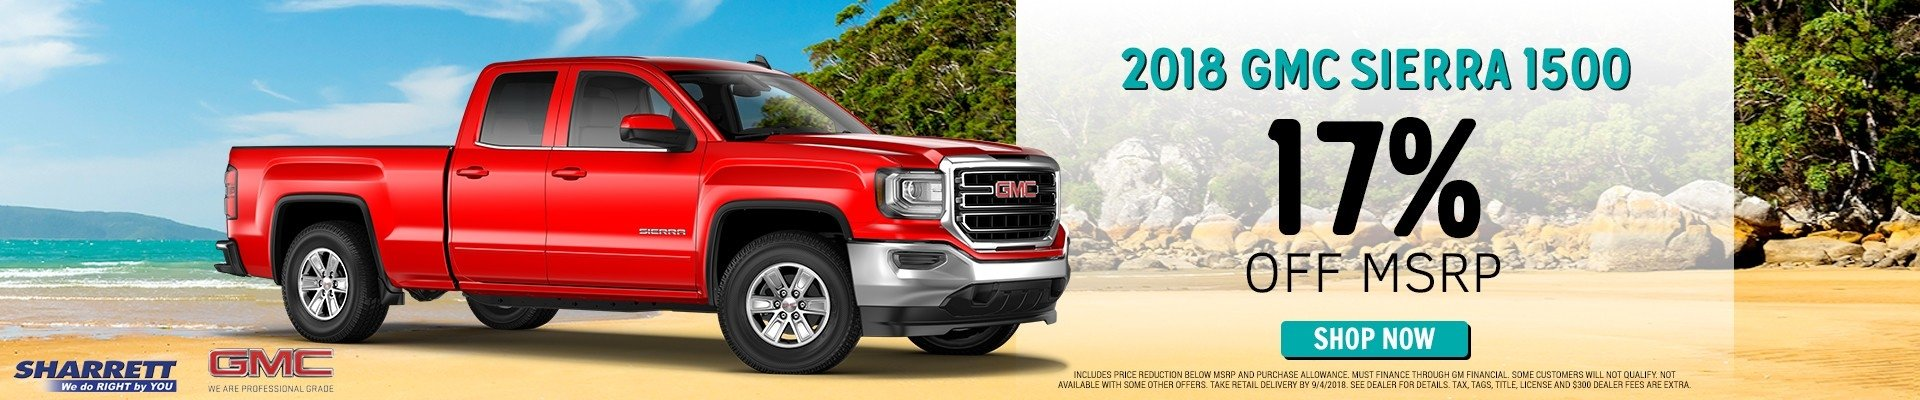 Get a 2018 GMC Sierra 1500 for 17% off MSRP | Sharrett Buick GMC